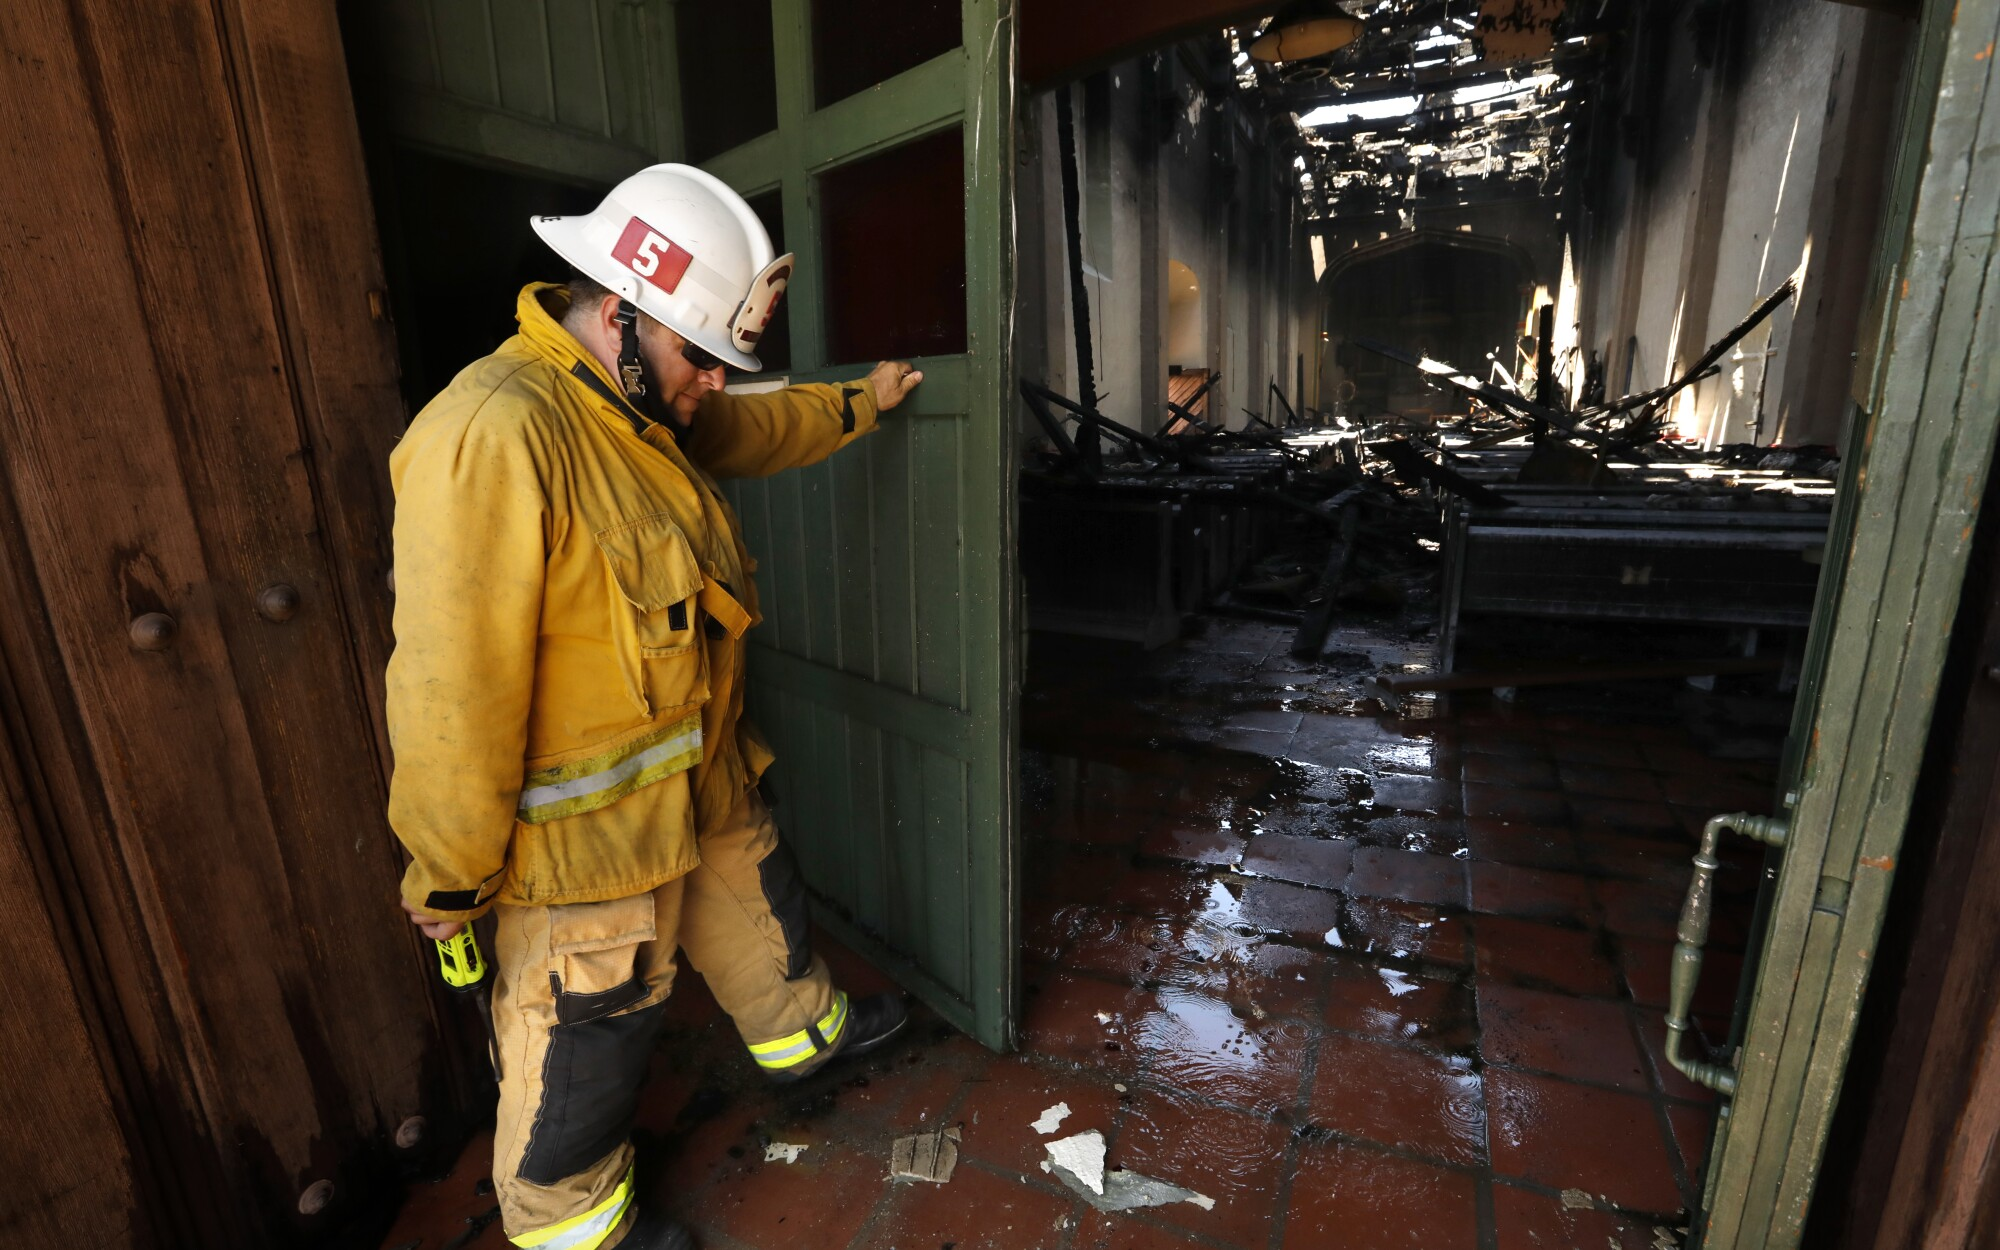 San Gabriel Fire Captain David Mulligan opens a door to the burned and severely damaged interior of the San Gabriel Mission